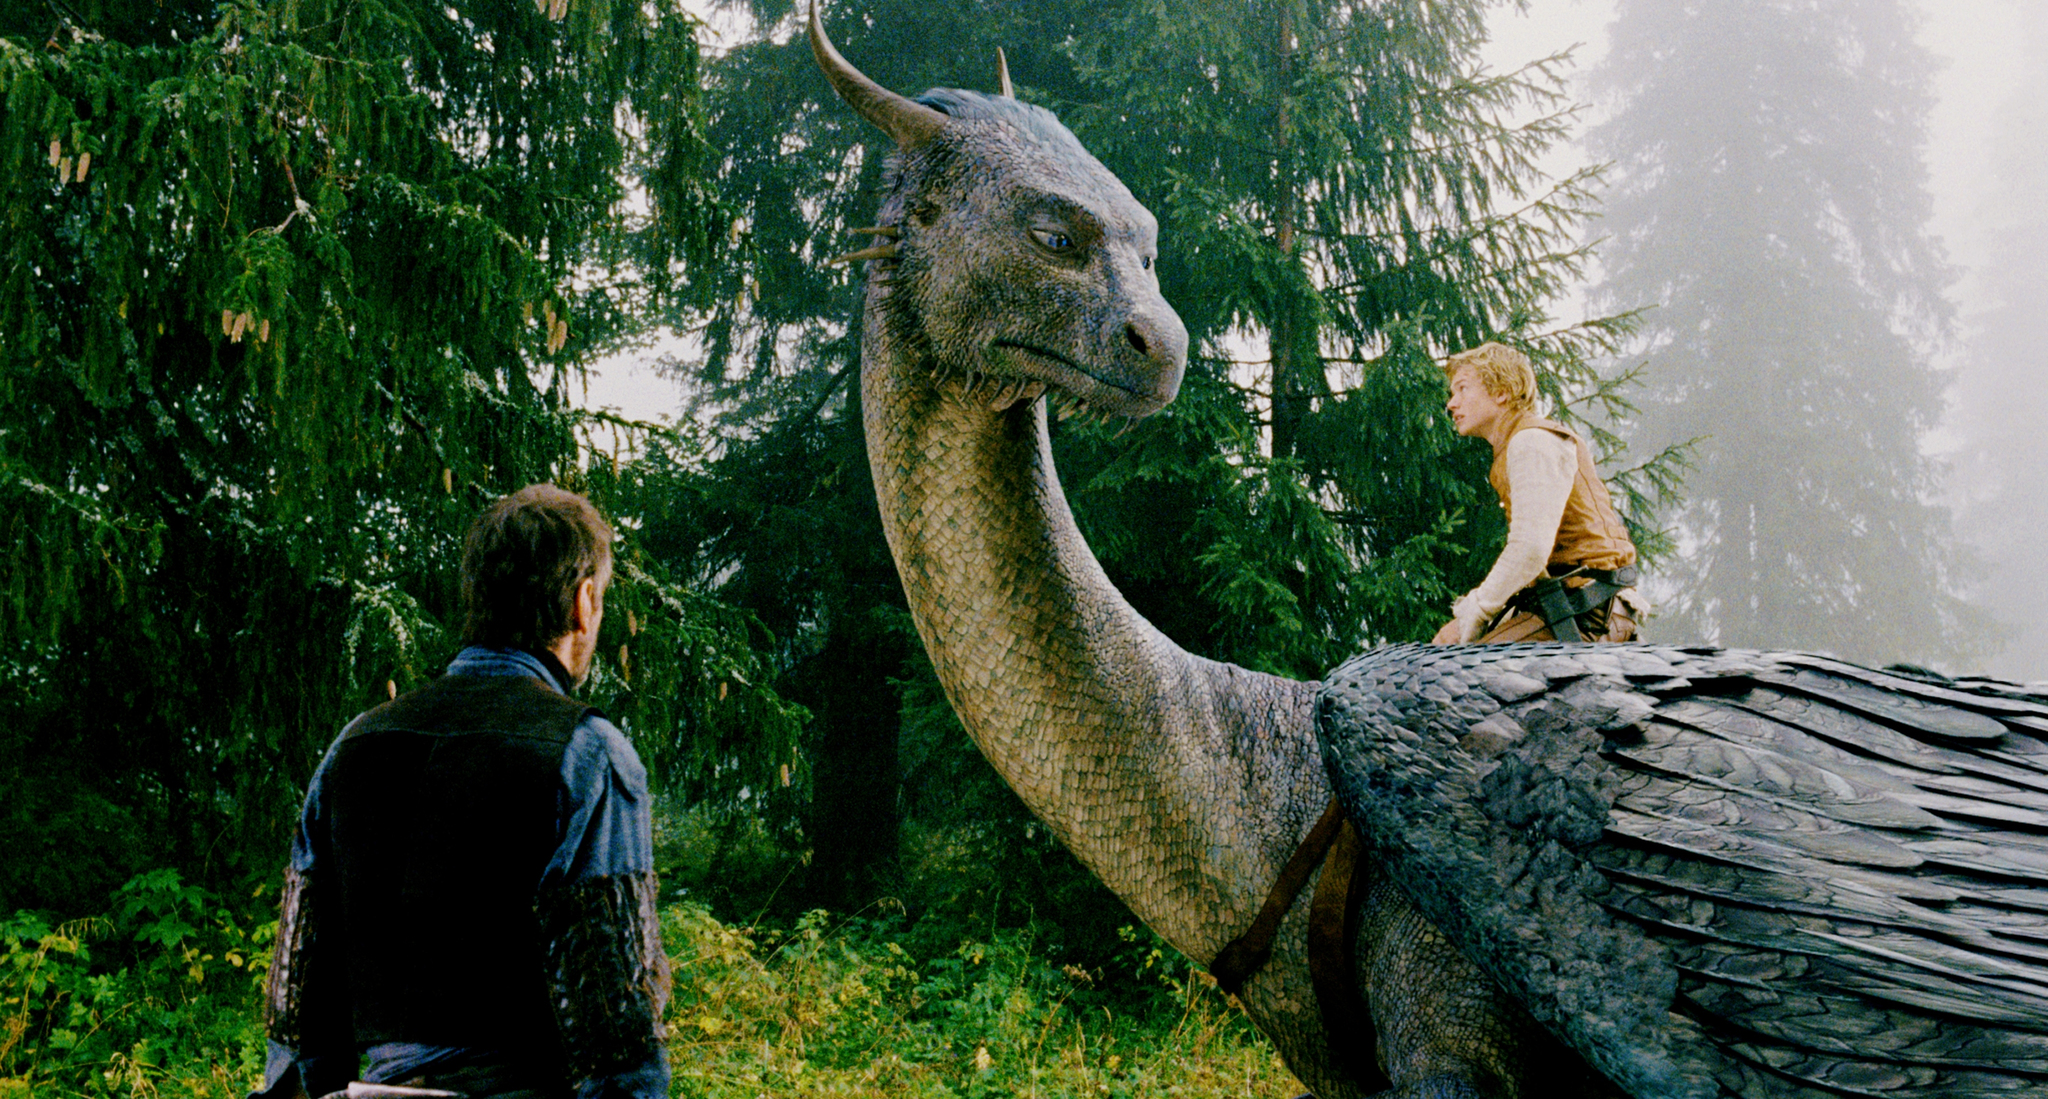 9. Eragon: People who watched the movie instantly felt so bad and regretted wasting their time watching such an awful movie. Everything which can go wrong in a film went wrong. They even had a small budget and couldn't afford to make a movie worthy of watching.